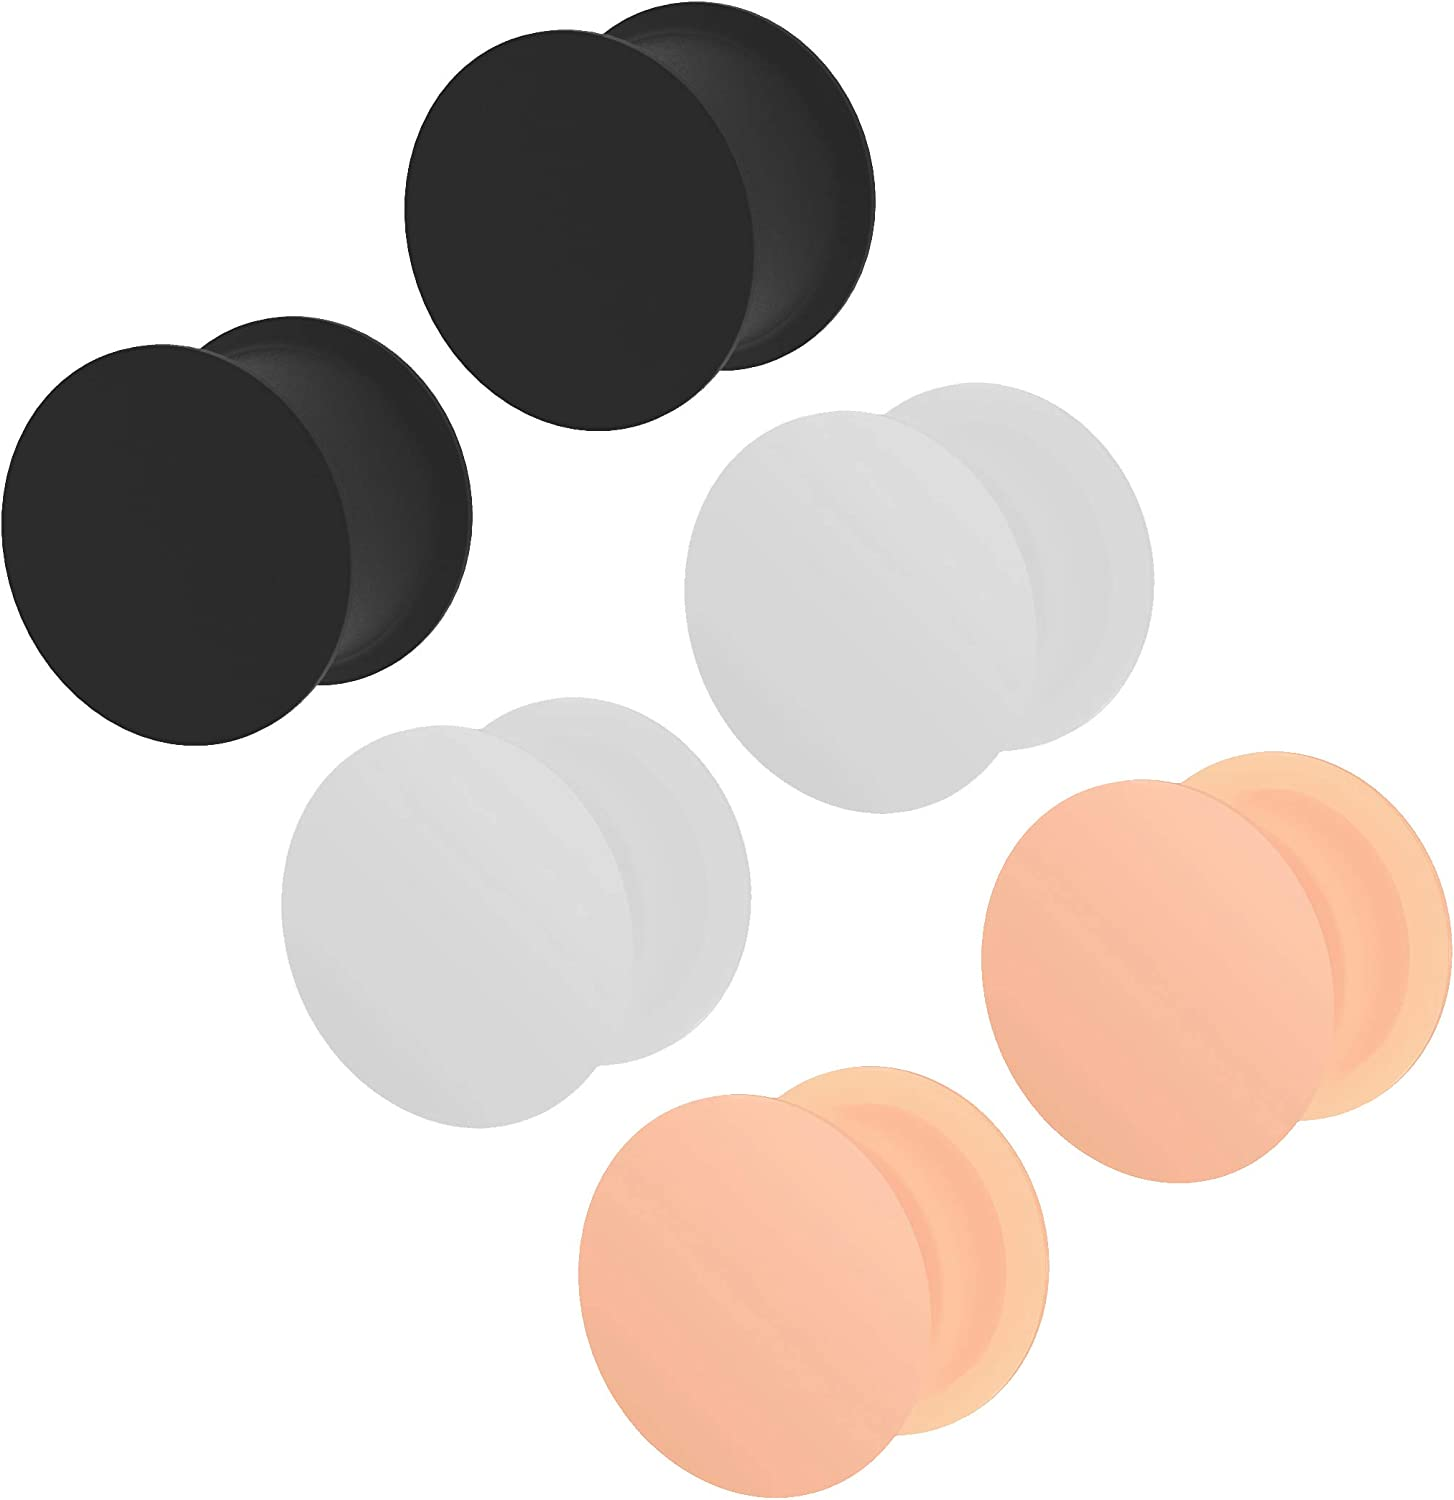 3 Pairs Max 43% OFF Ear Max 80% OFF Plug Skin White Earrings Double Black Silicone Flare